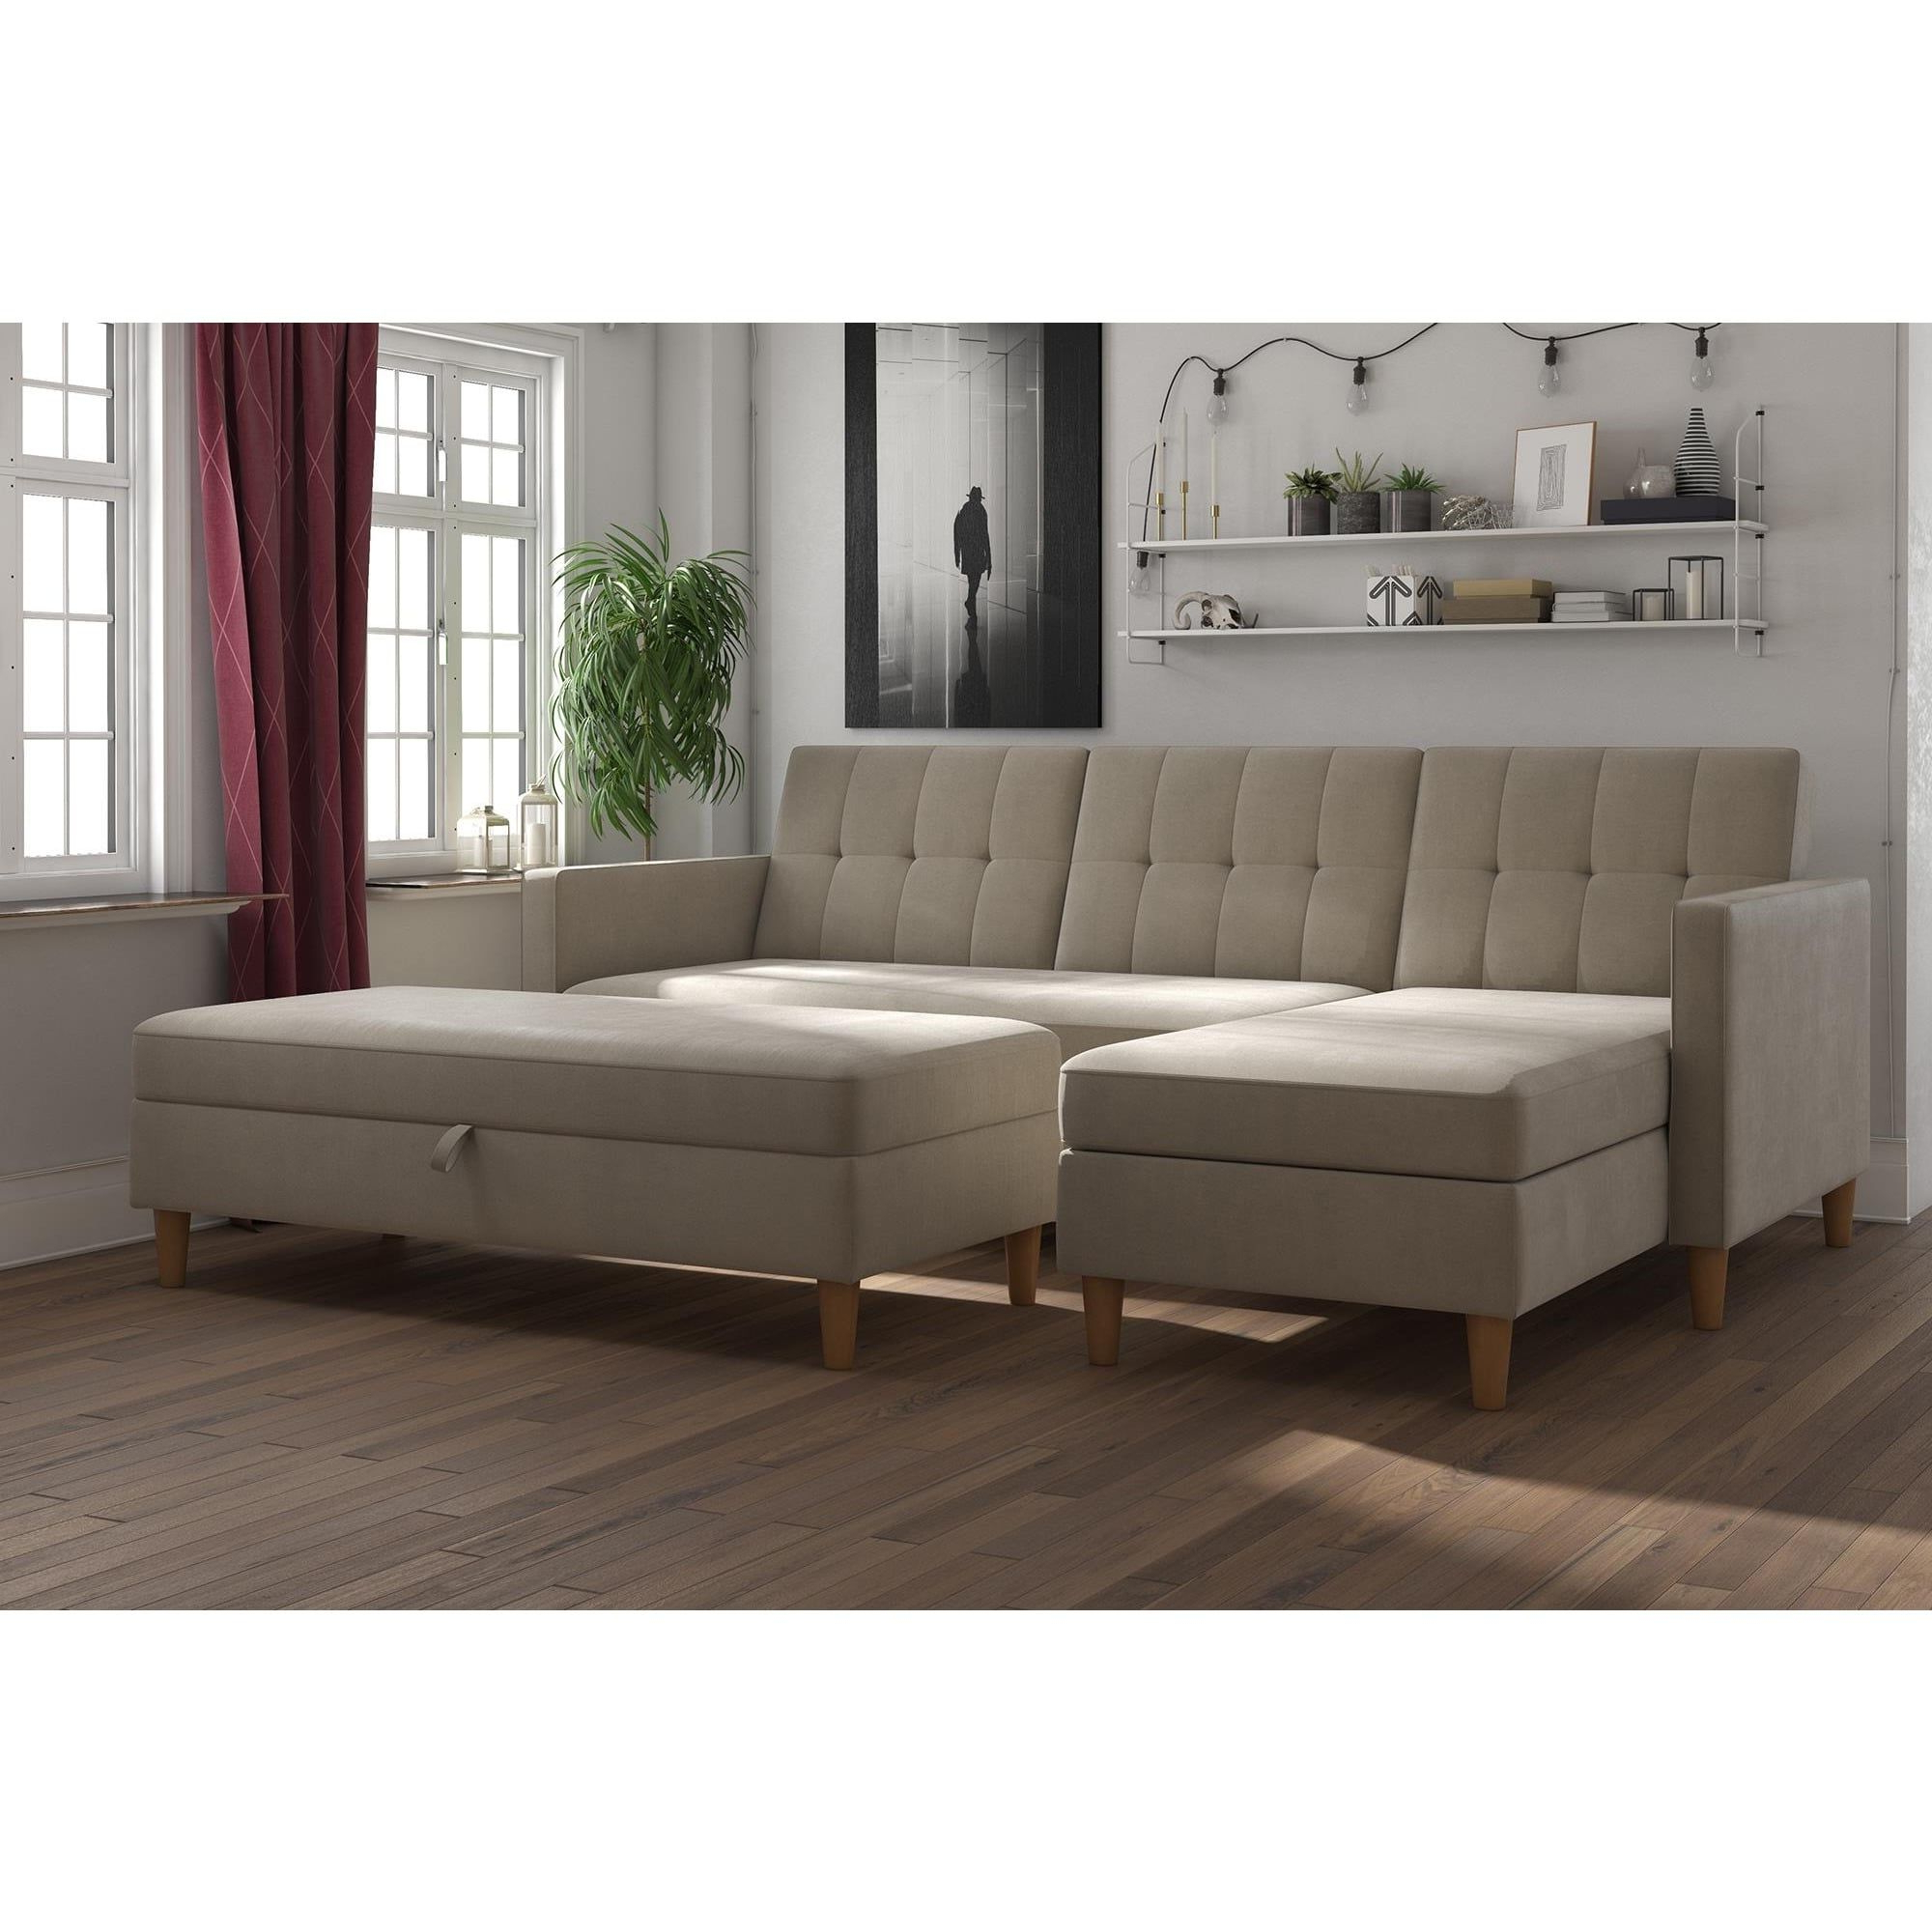 Newest Our Best Living Room Furniture Deals (View 4 of 20)